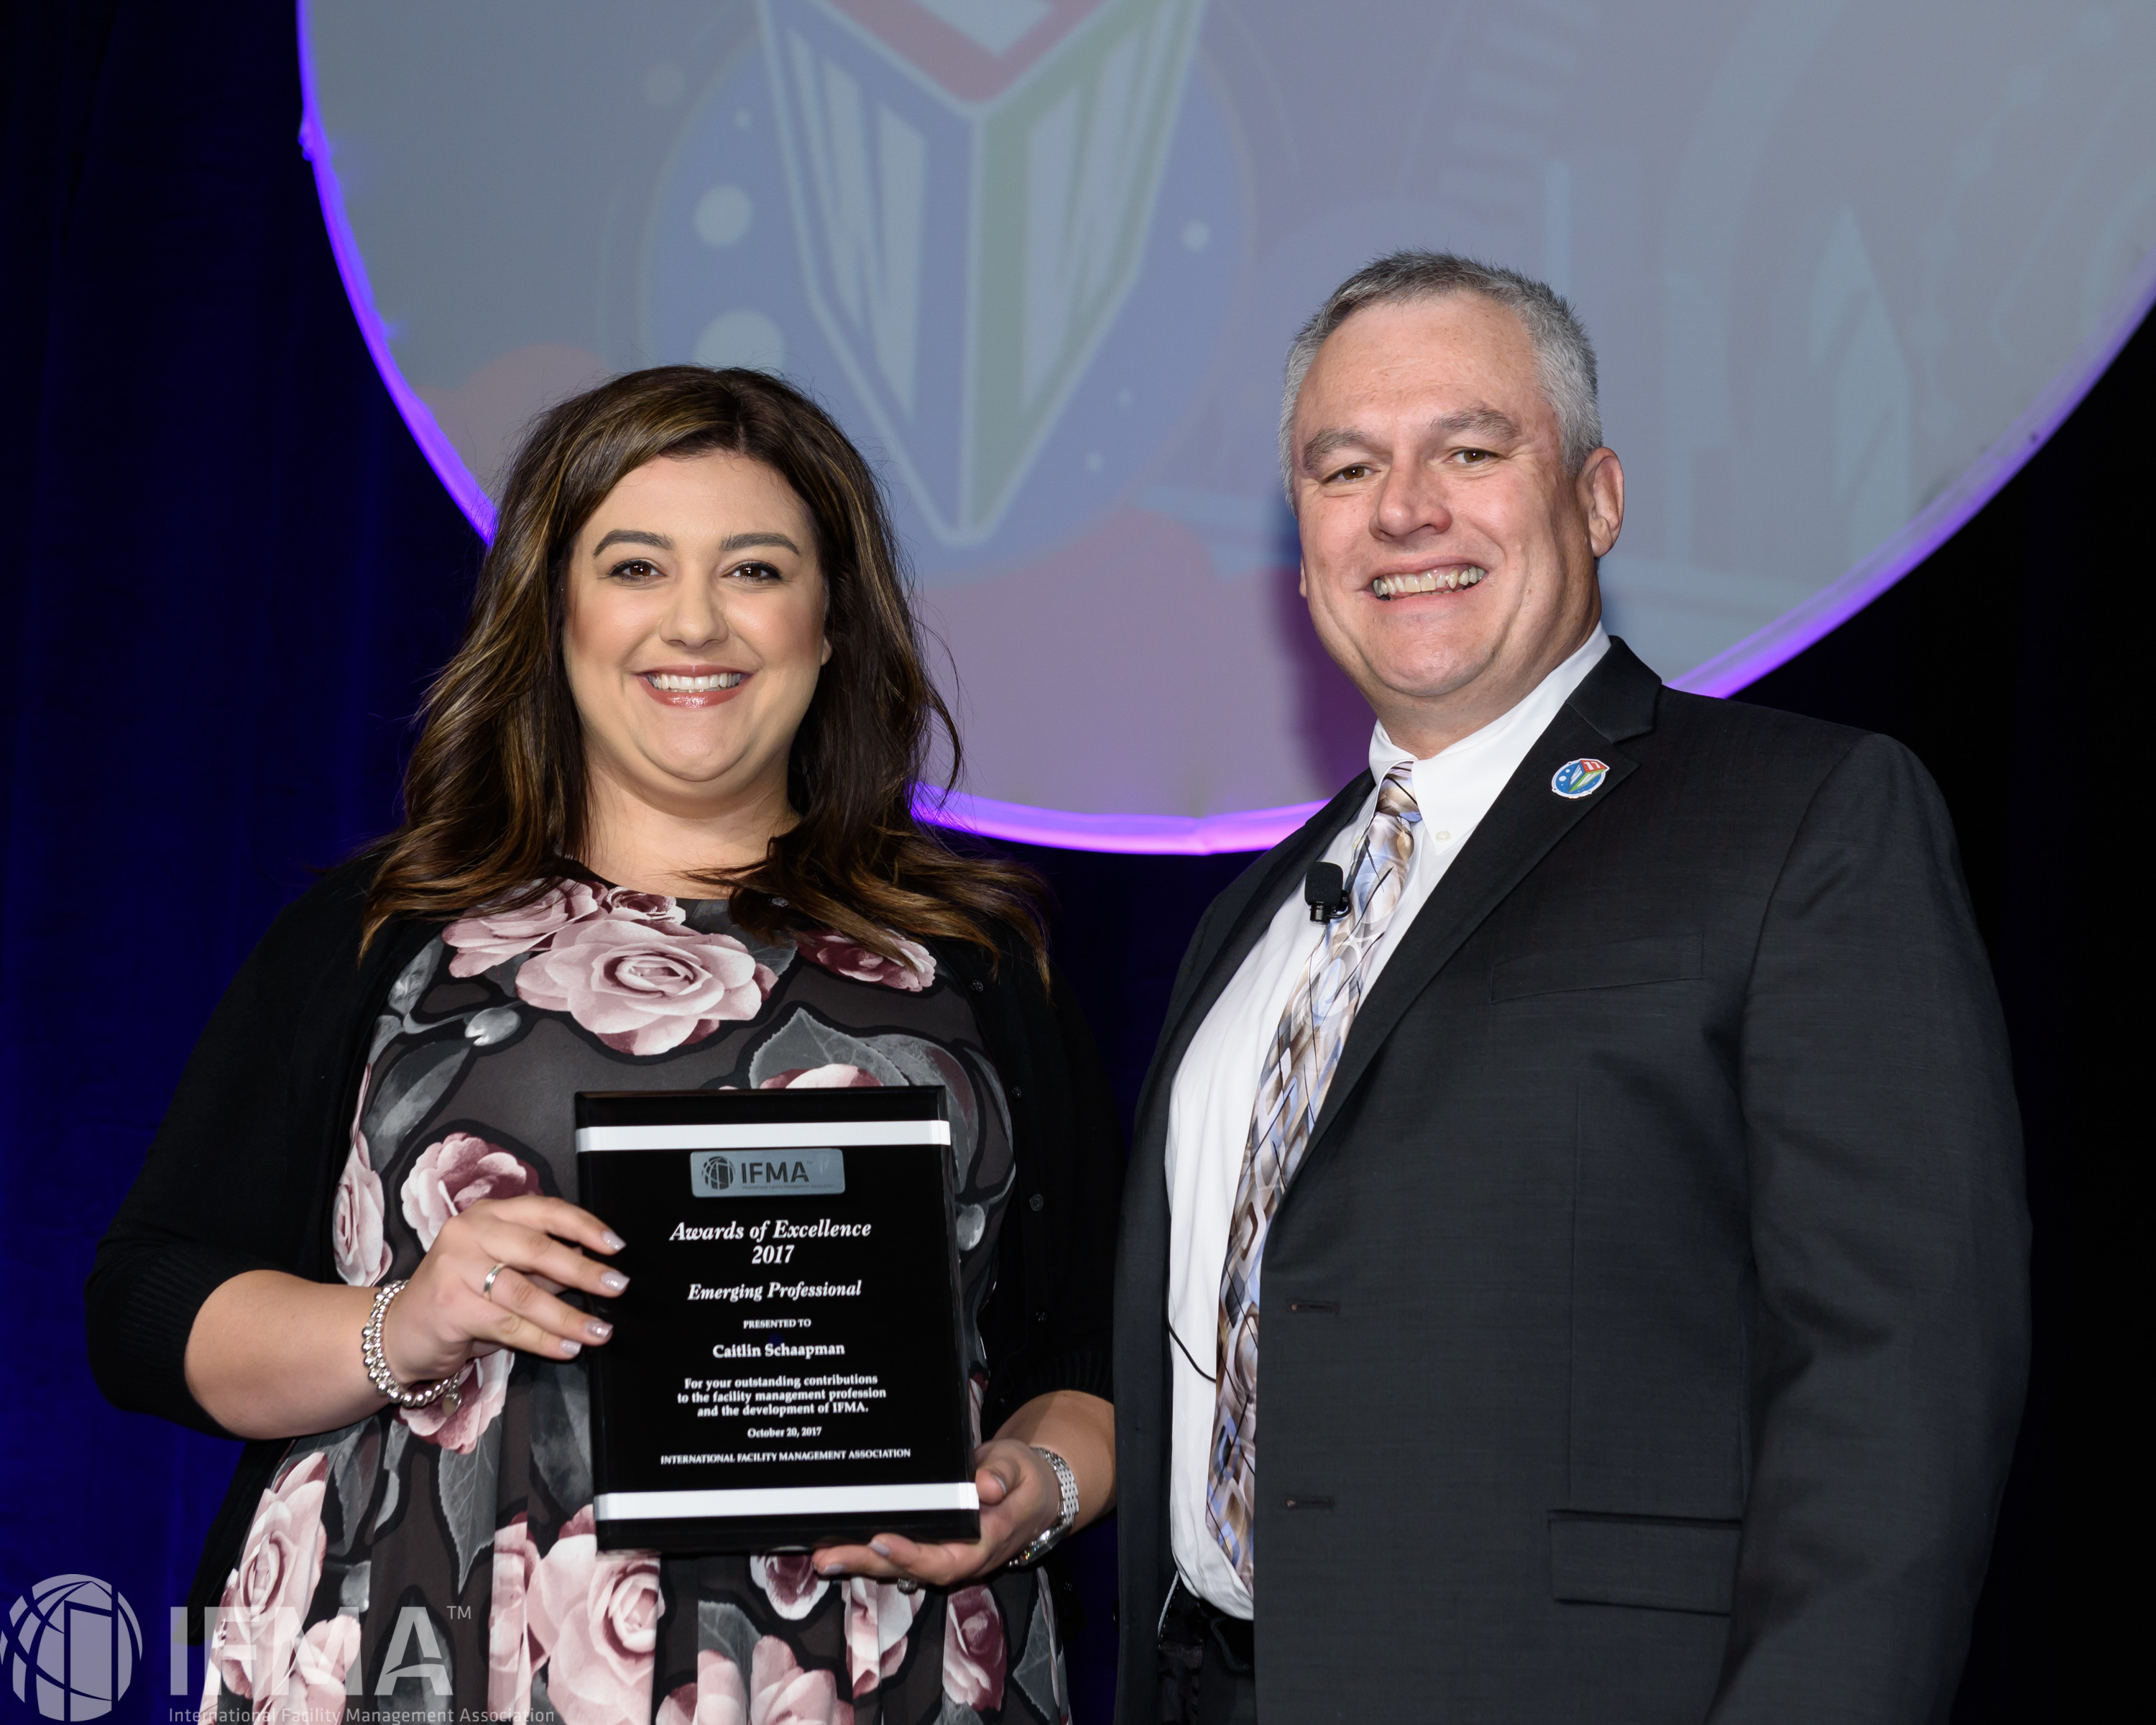 Caitlin Schaapman receives Emerging Professional of the Year